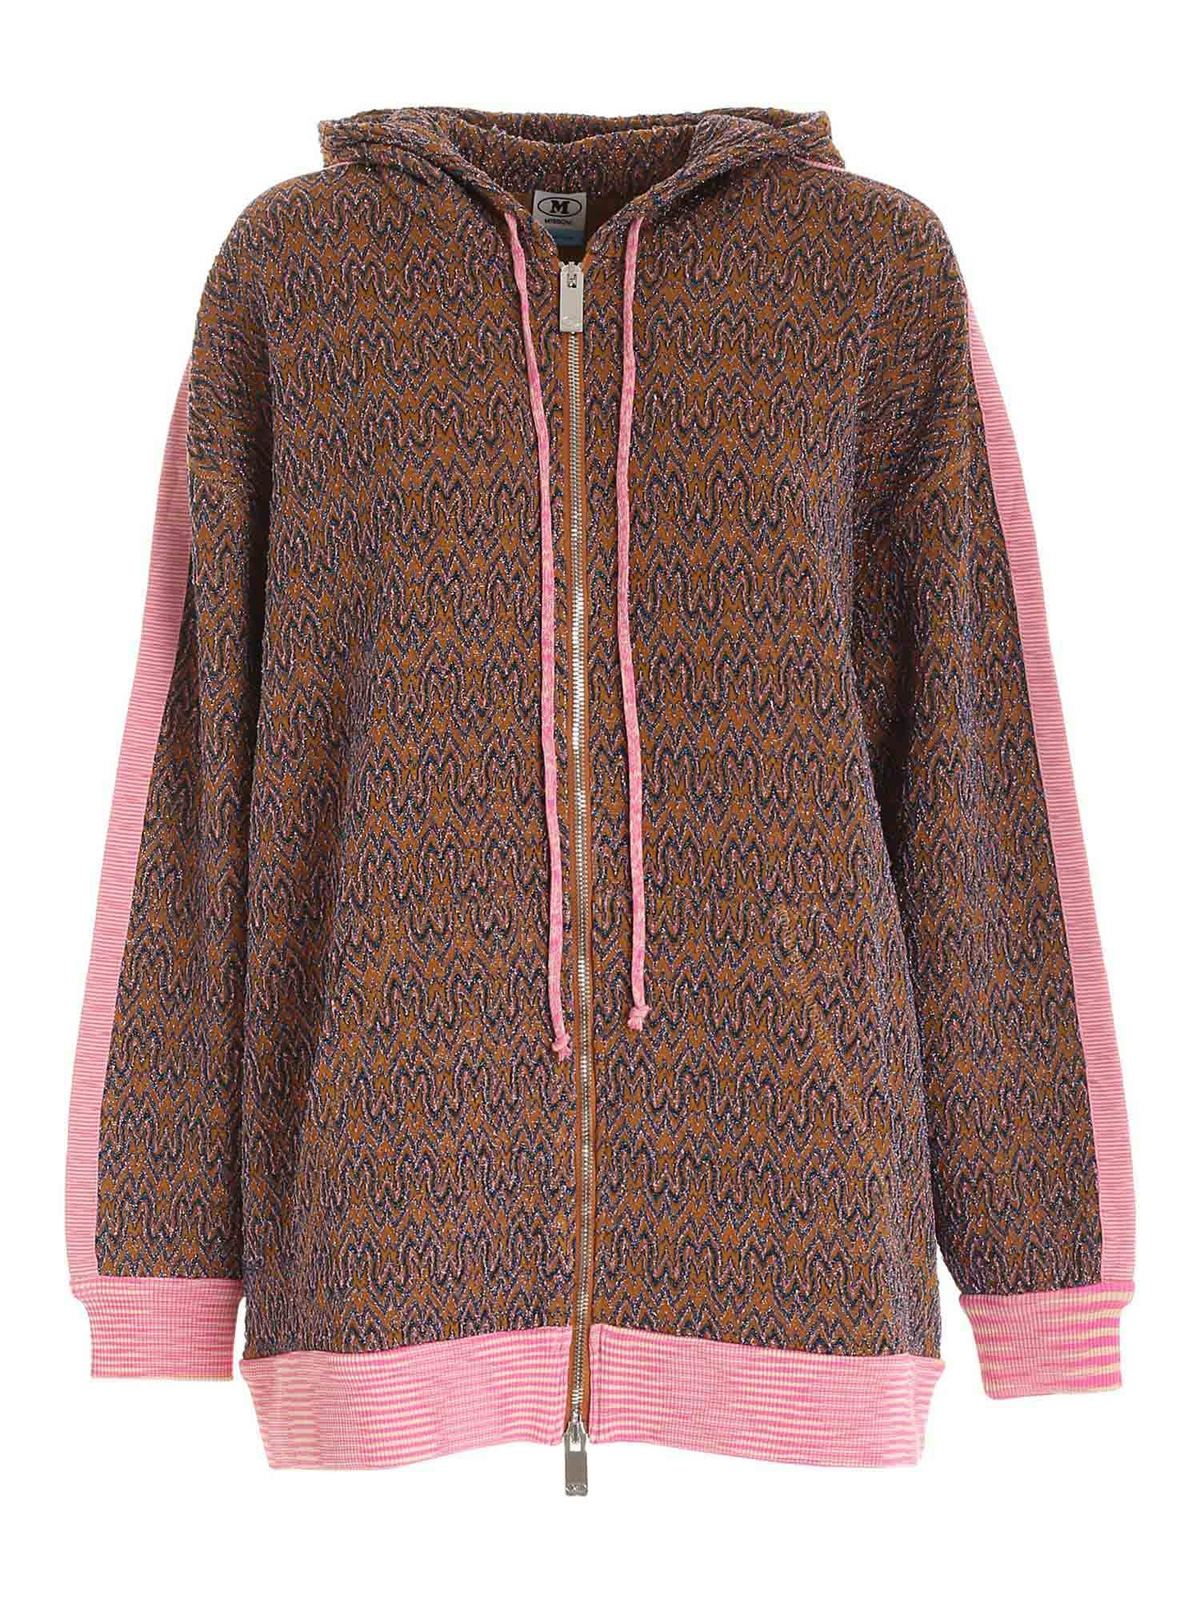 M Missoni LAME PATTERN SWEATSHIRT IN BROWN AND PINK